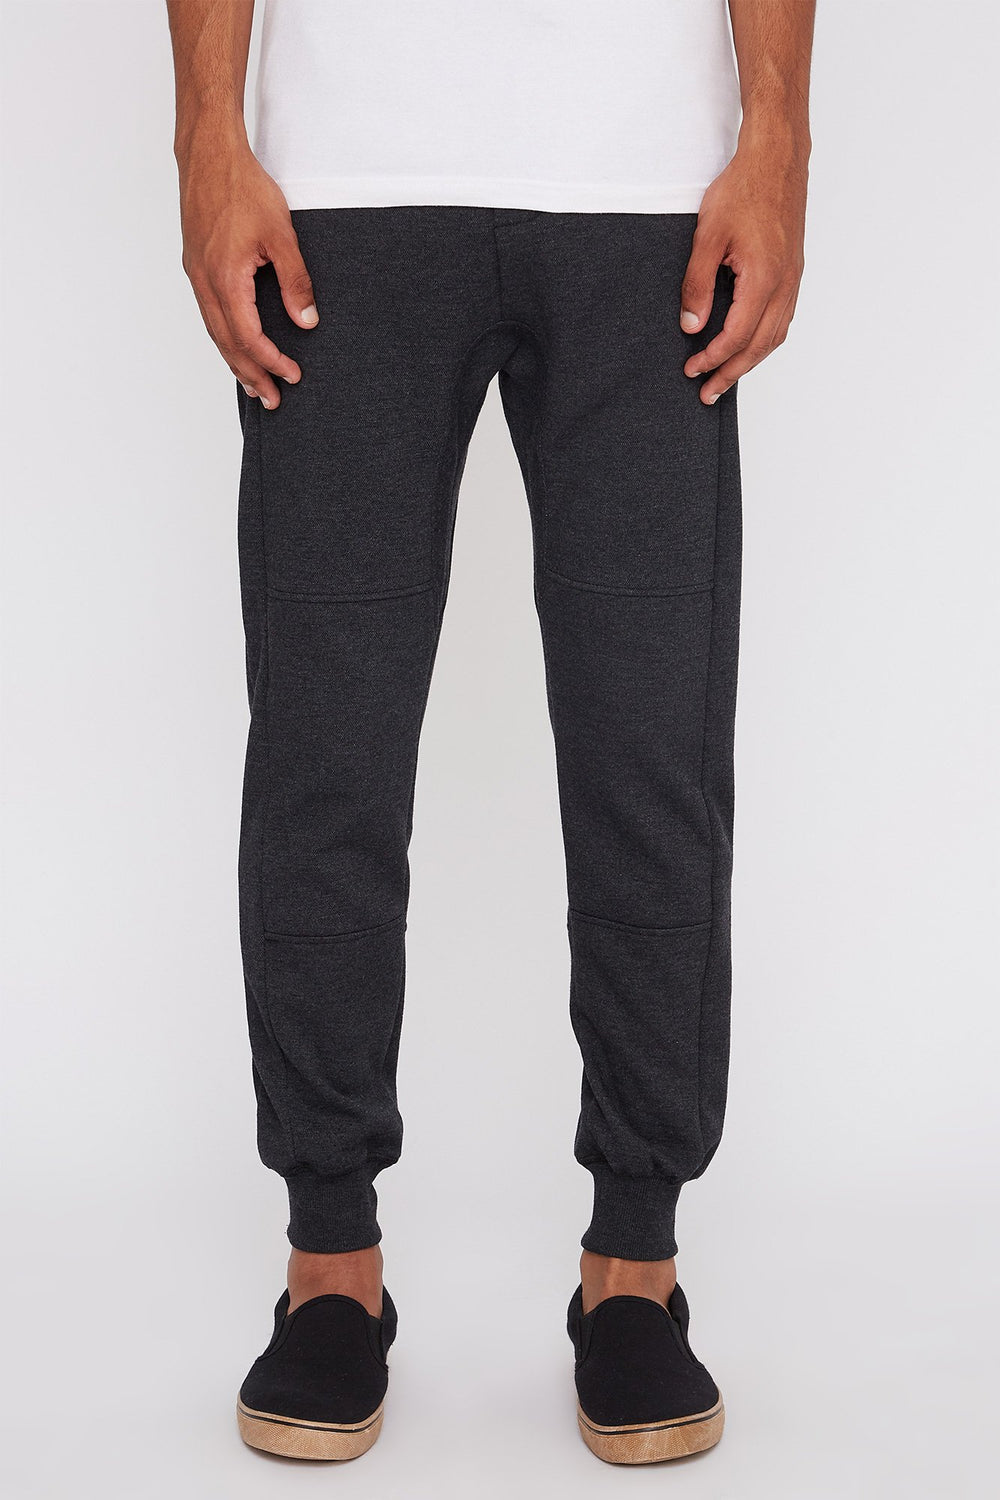 West49 Mens Textured Zip-Up Jogger Charcoal